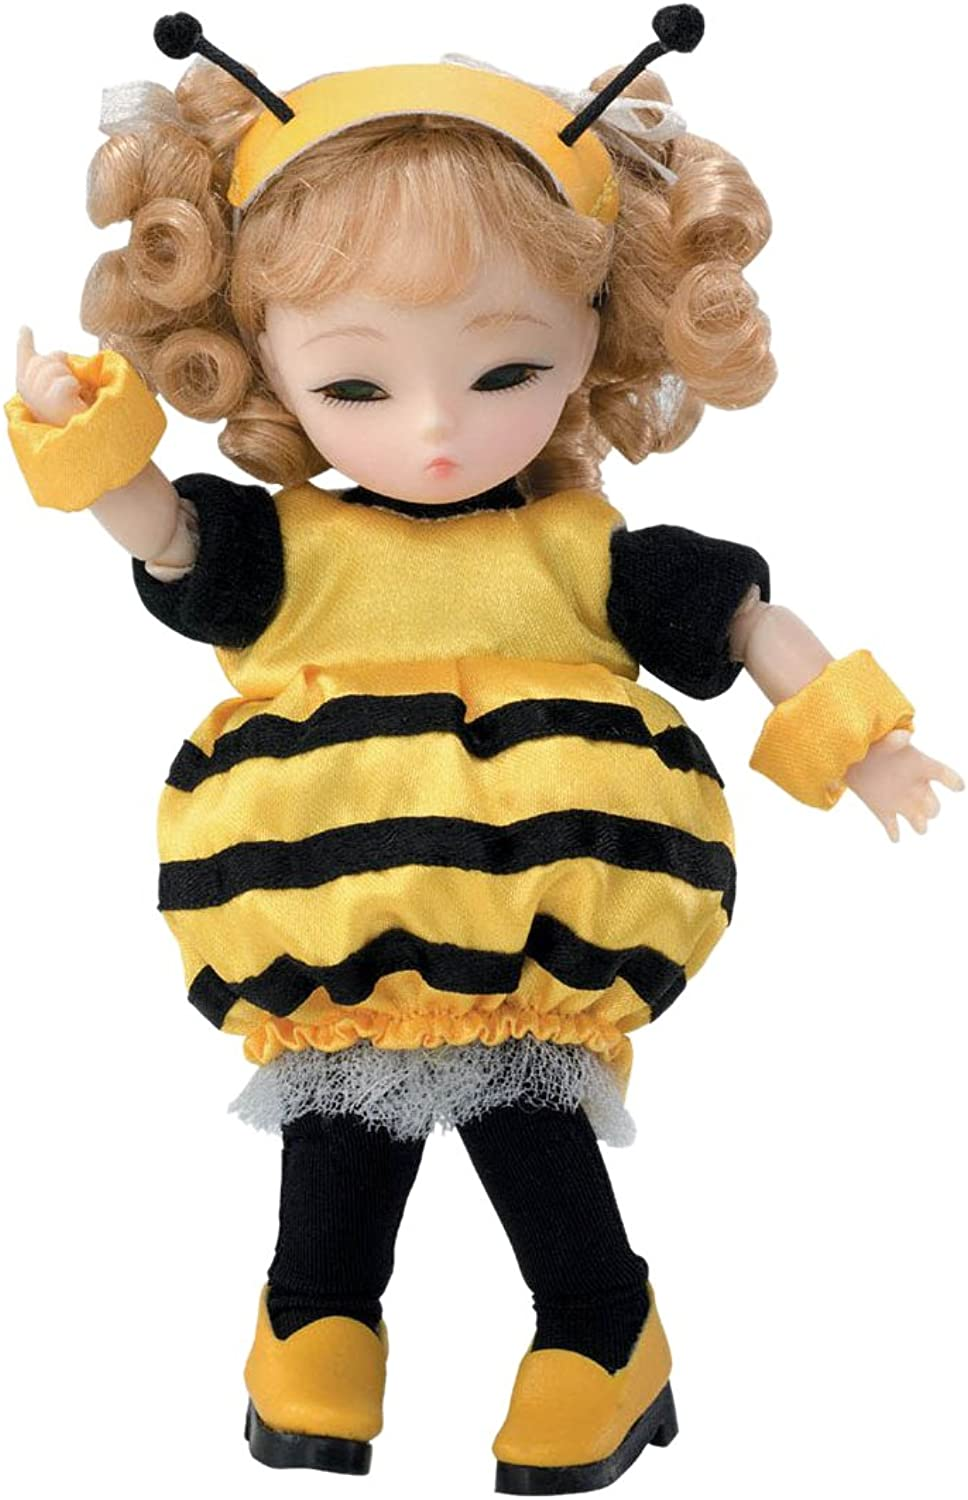 saludable Ball-jointed Doll Ai - Bee Balm by by by Ai Ball Jointed Doll  Ven a elegir tu propio estilo deportivo.